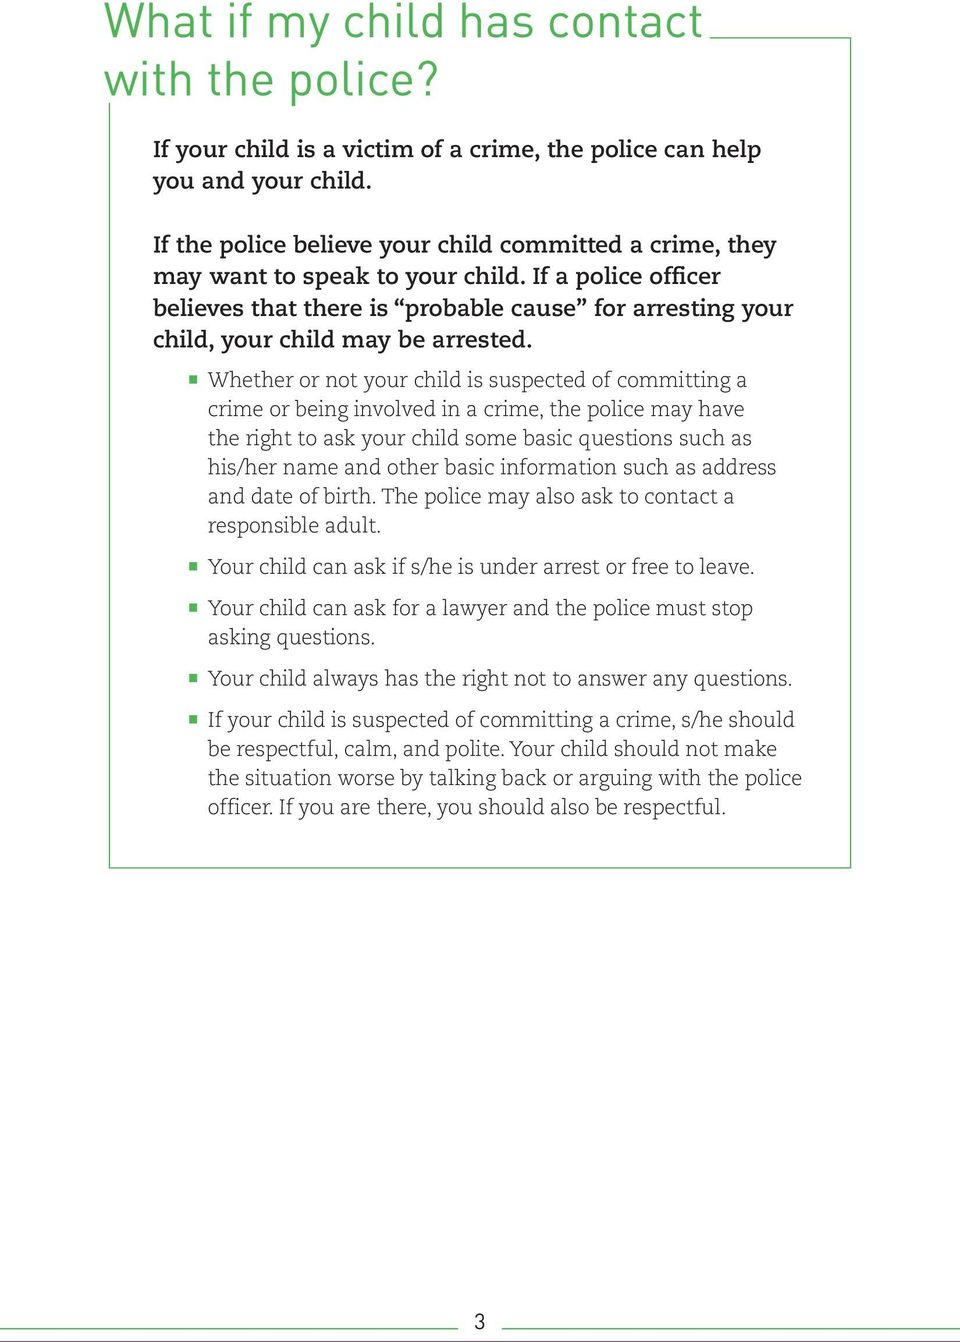 If a police officer believes that there is probable cause for arresting your child, your child may be arrested.